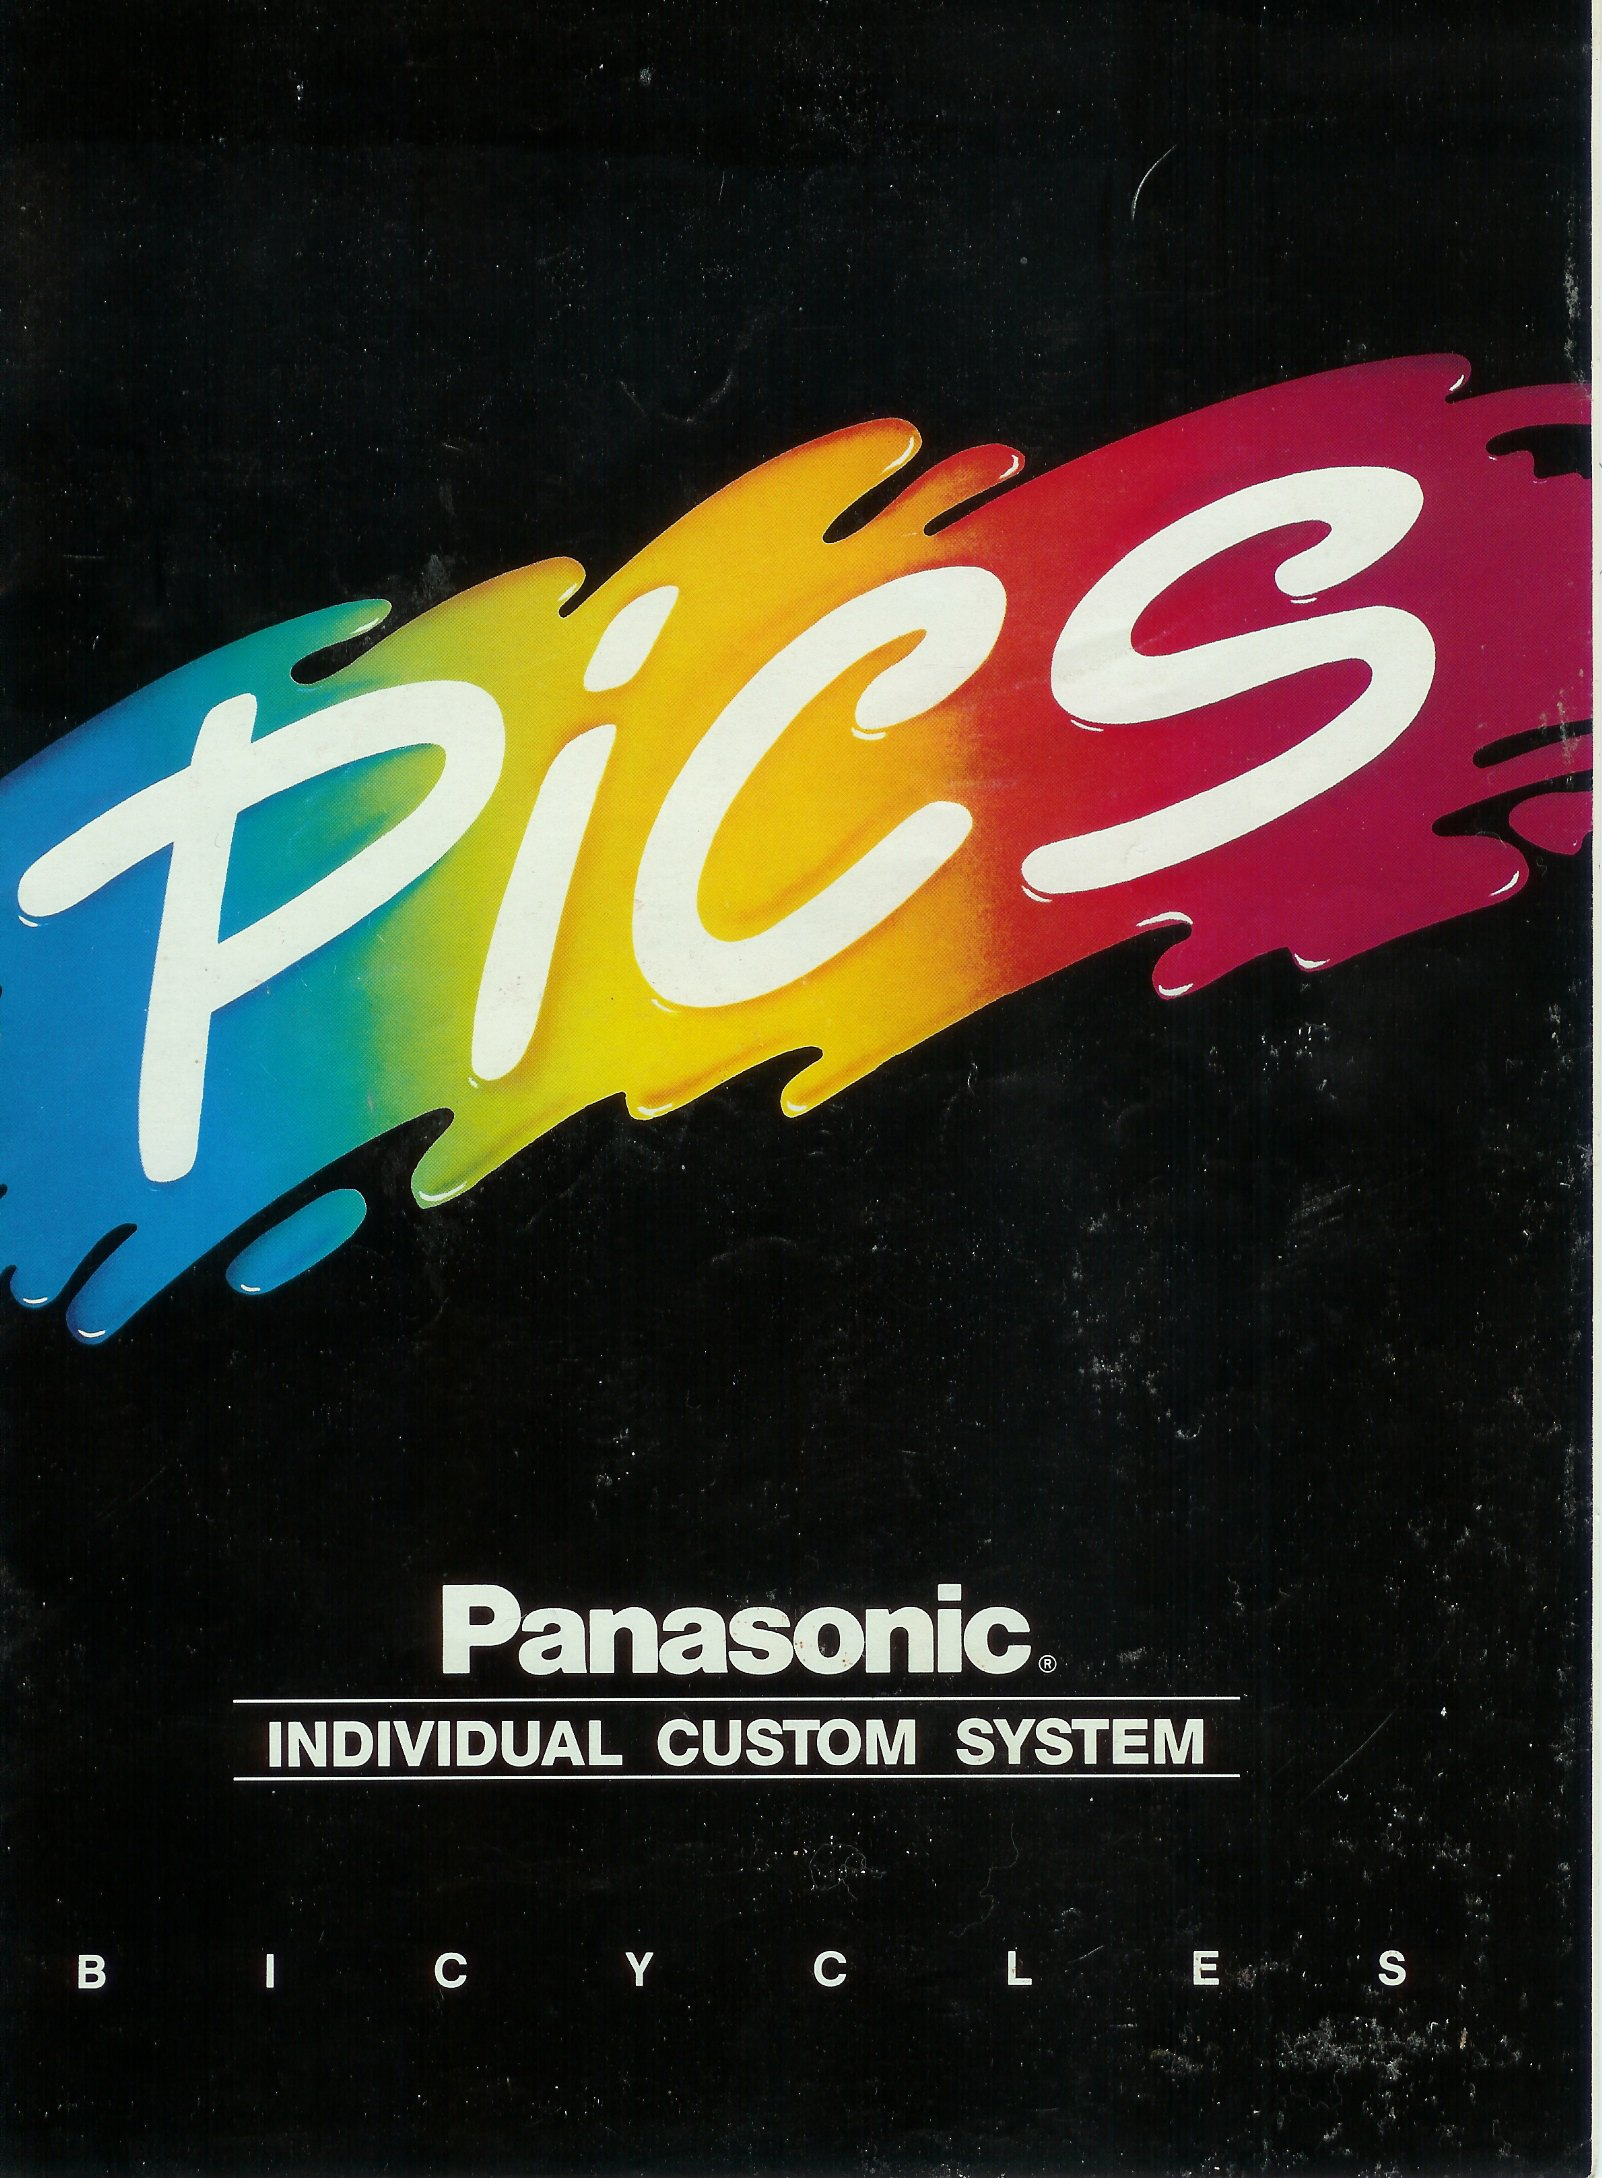 1988 Panasonic PICS Catalog Cover